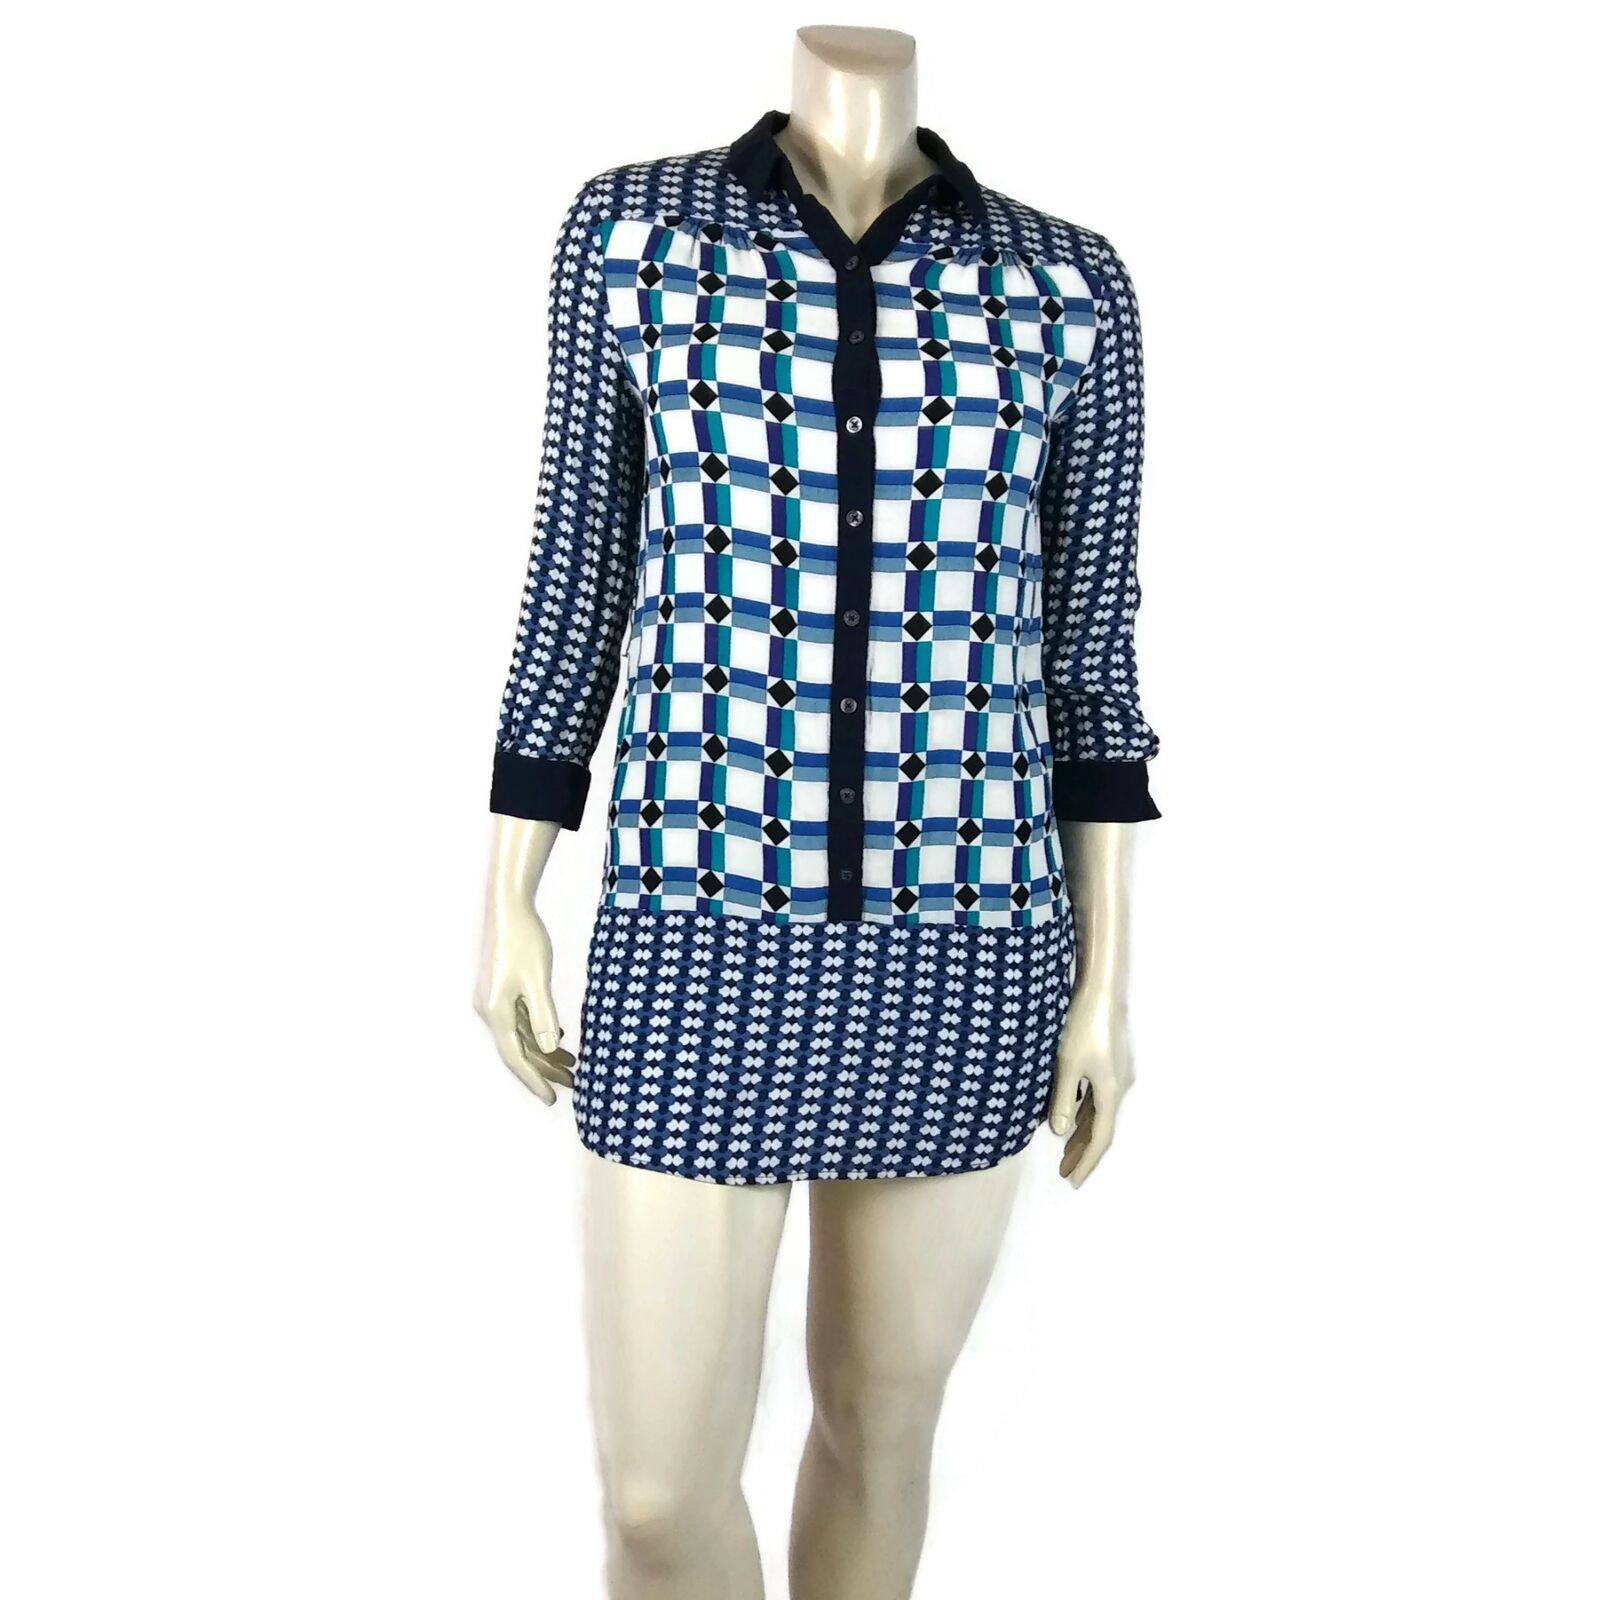 209687da583d MAEVE Multicolor Button Up Dress 6 Anthropologie ocebyu5266-Dresses ...